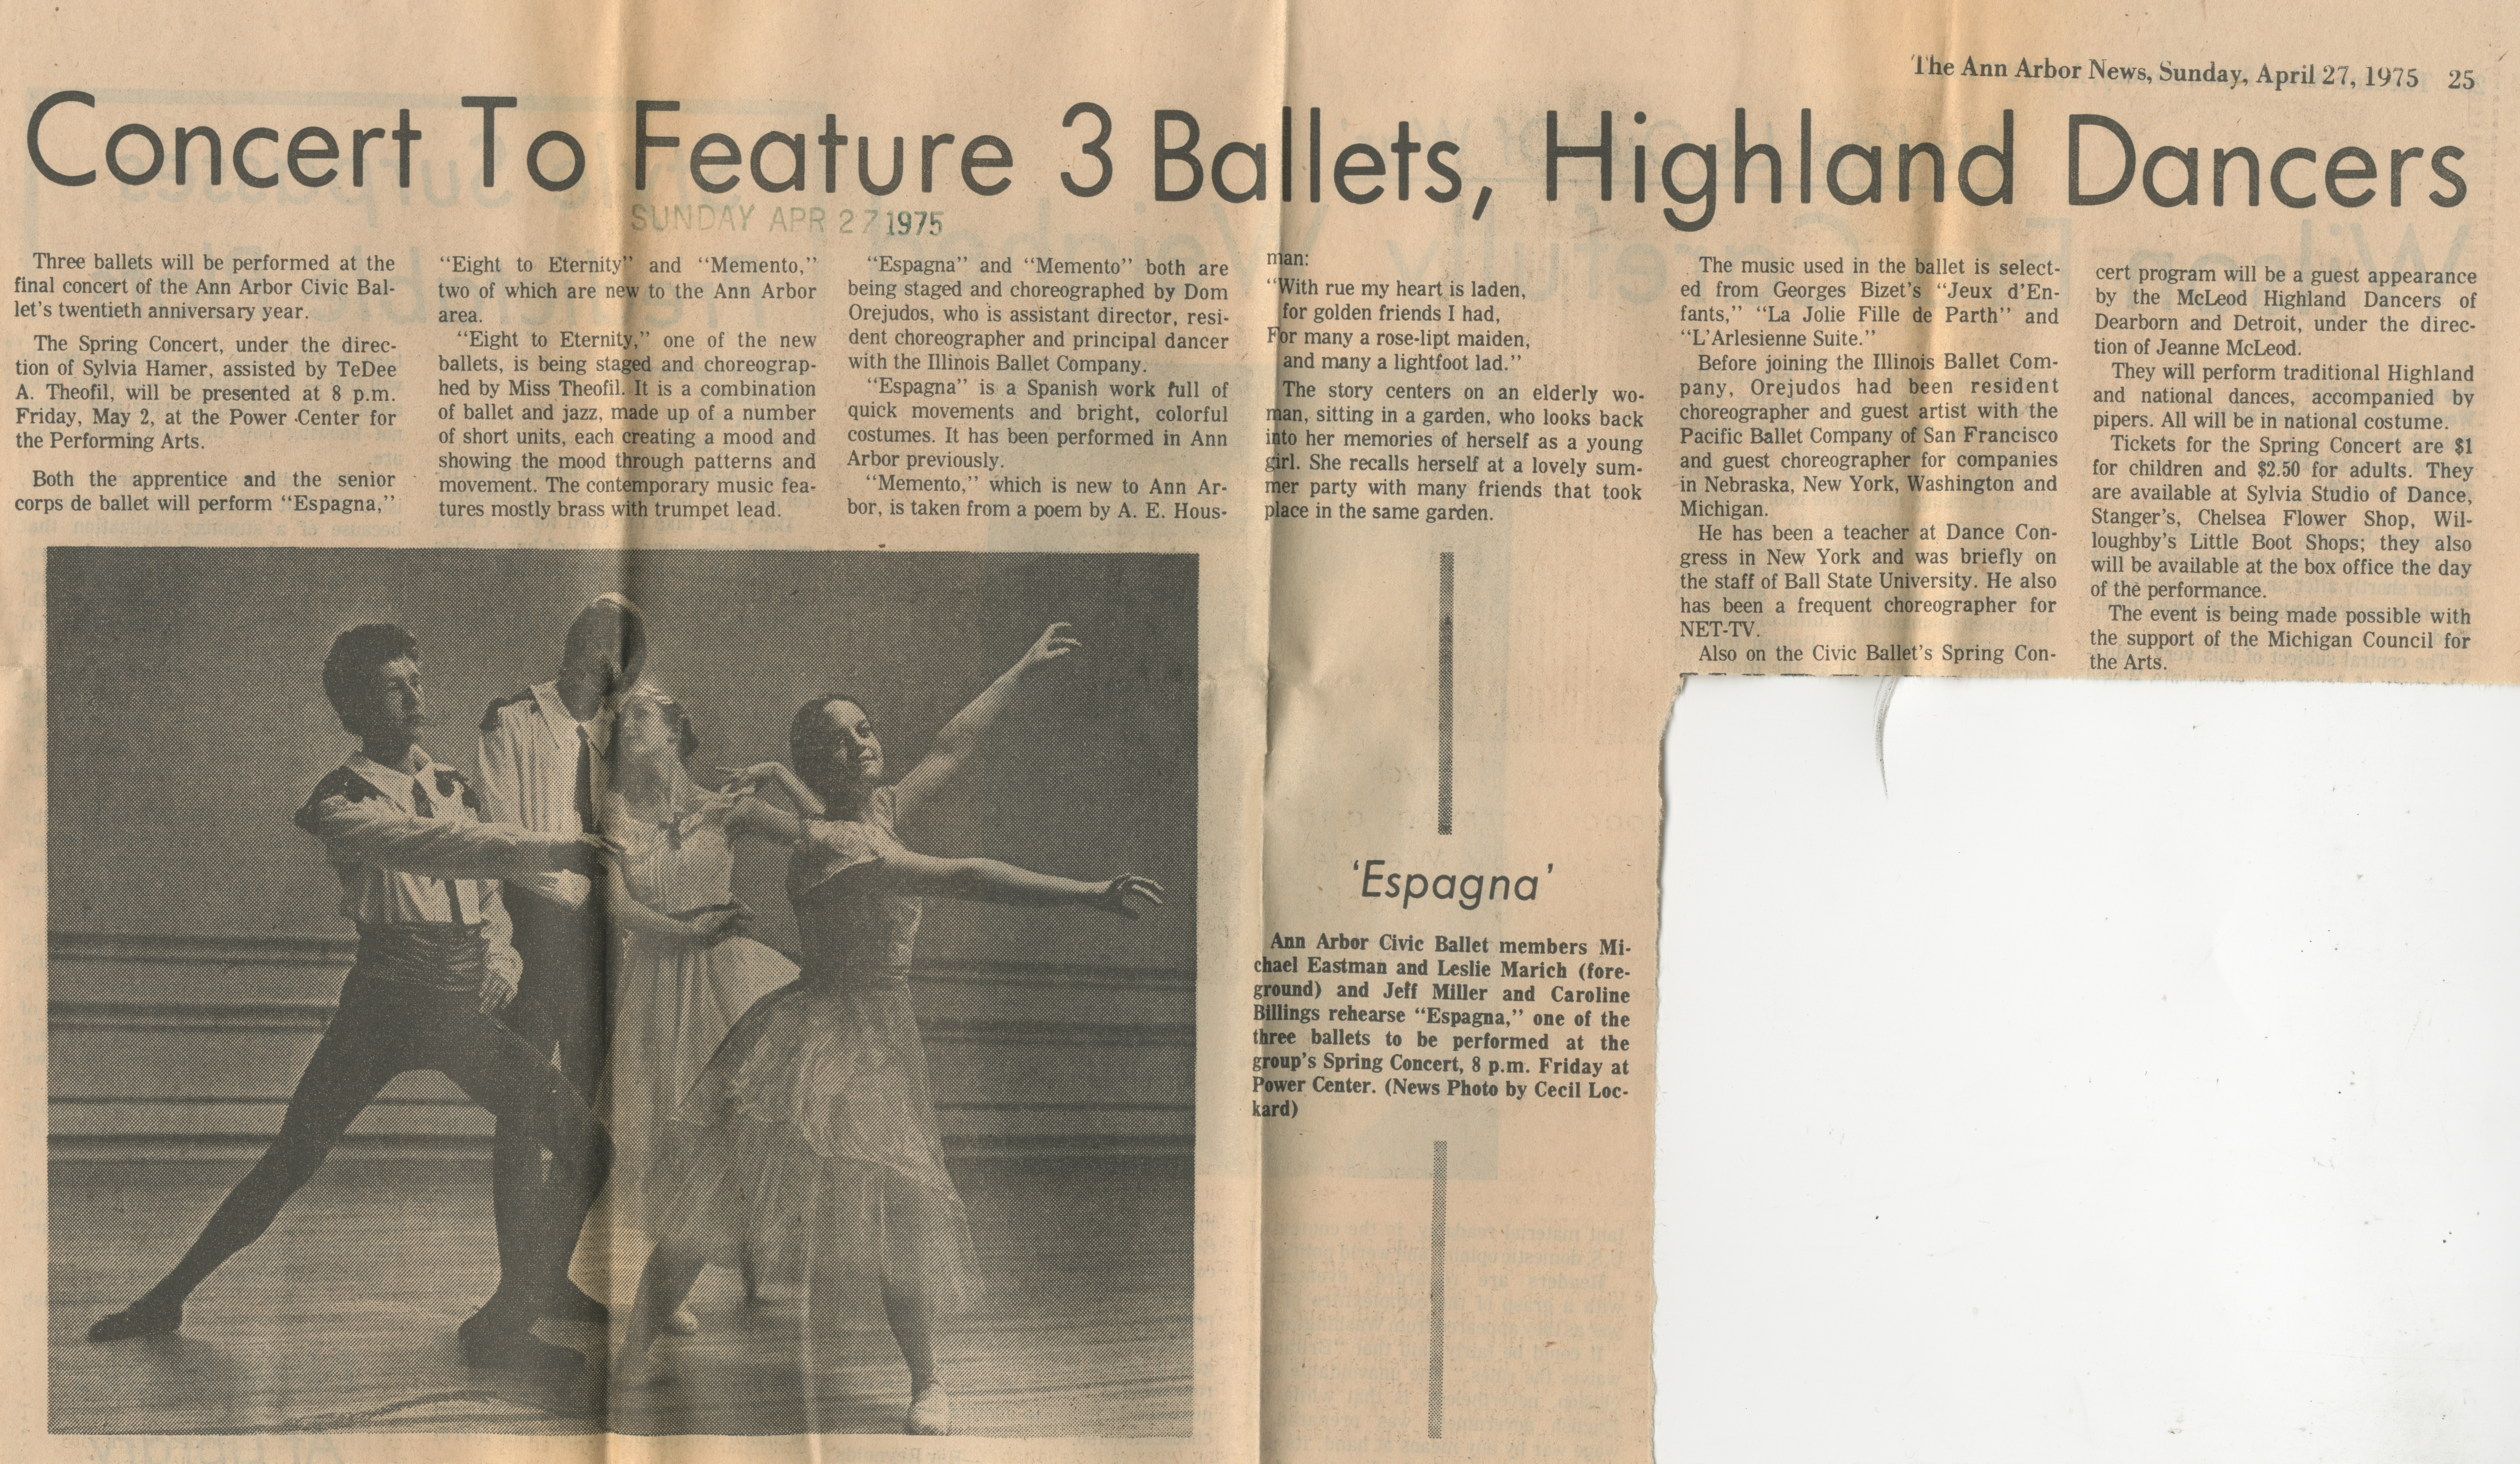 Concert To Feature 3 Ballets, Highland Dancers image